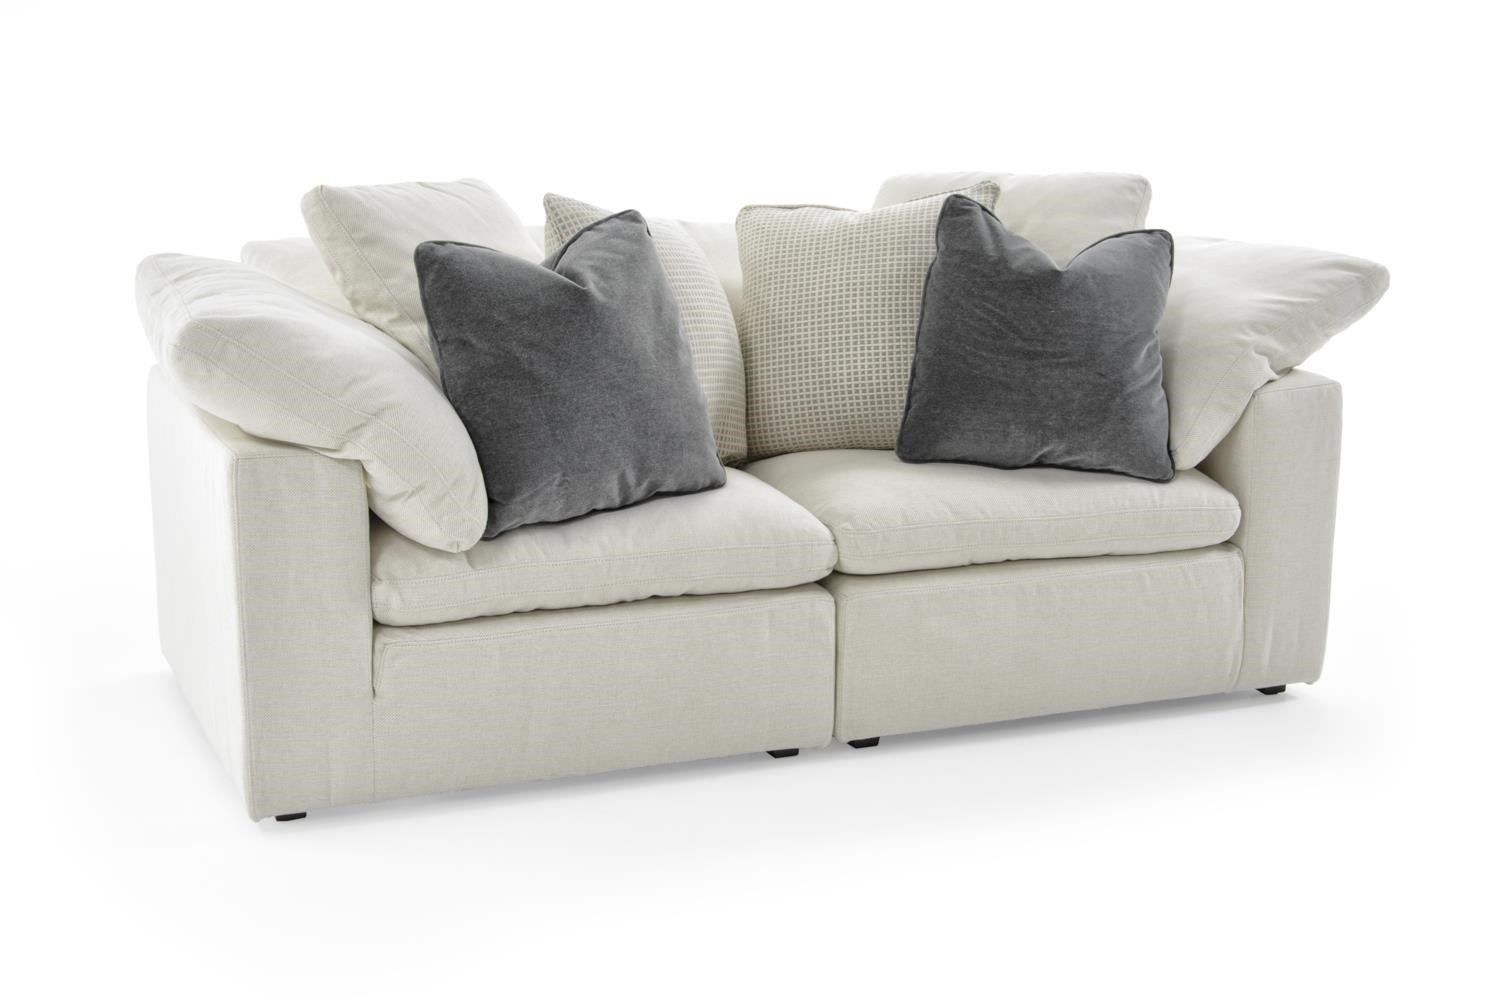 Palmer 2 Pc Sectional Sofa by Universal at Baer's Furniture